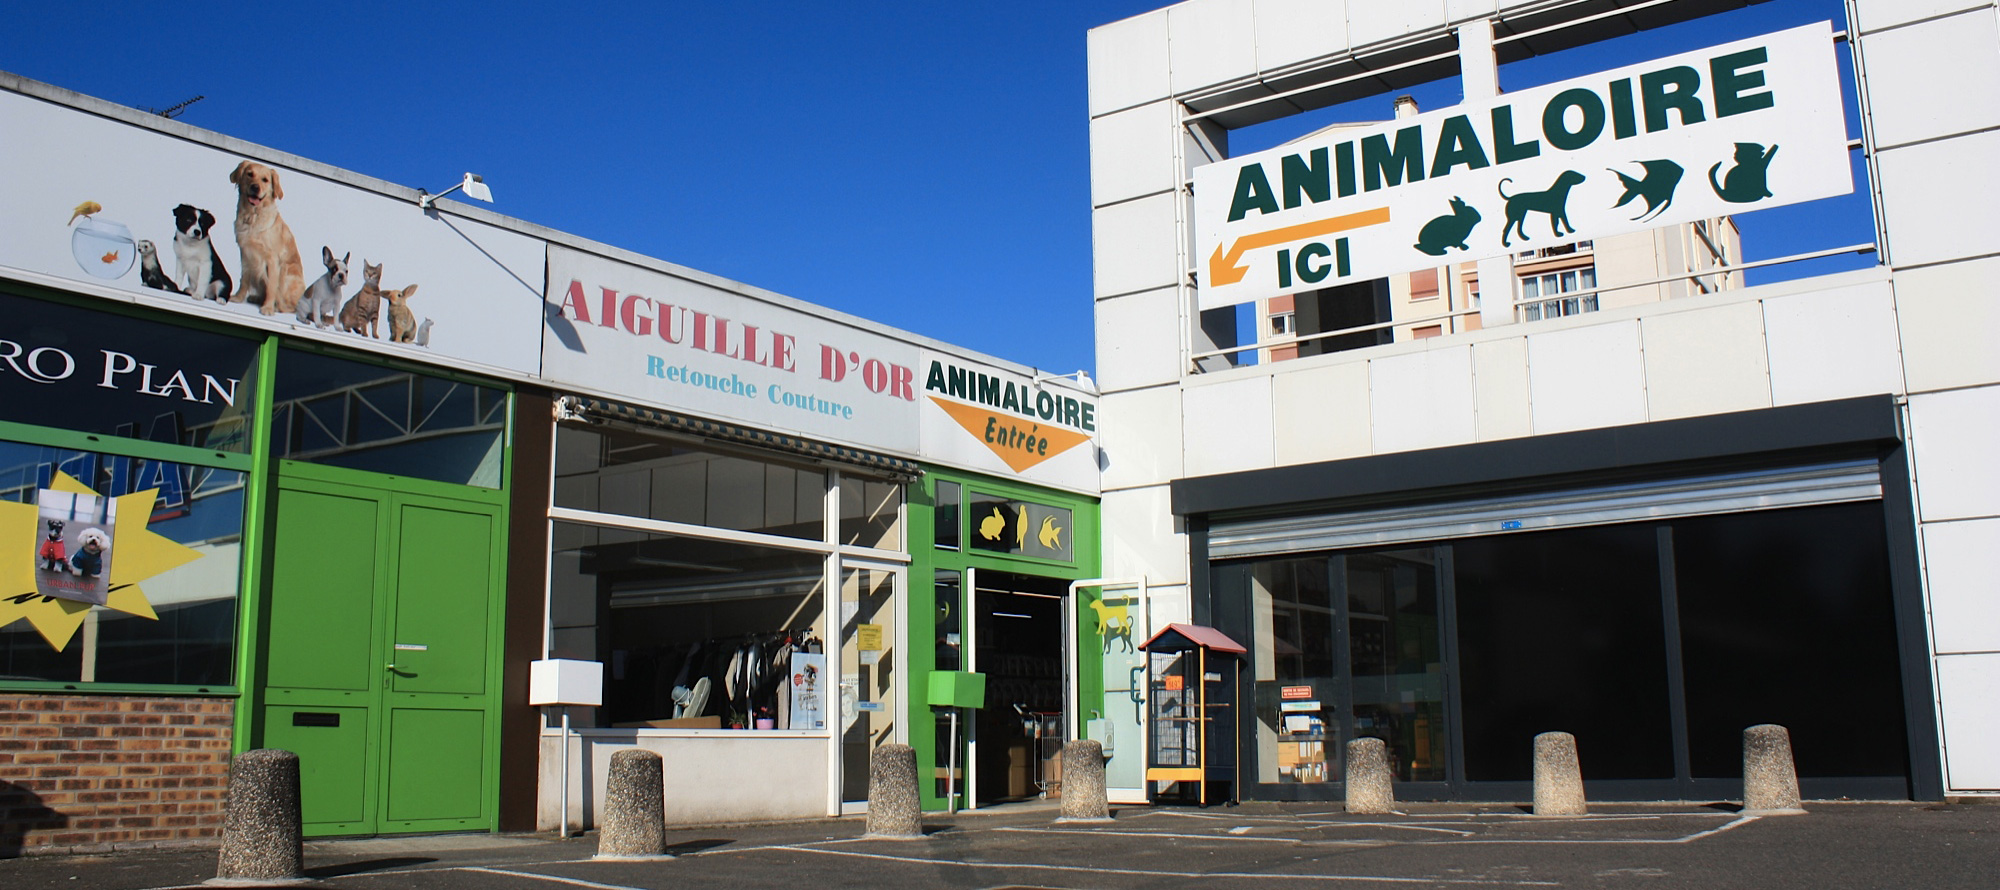 magasin_animaloire